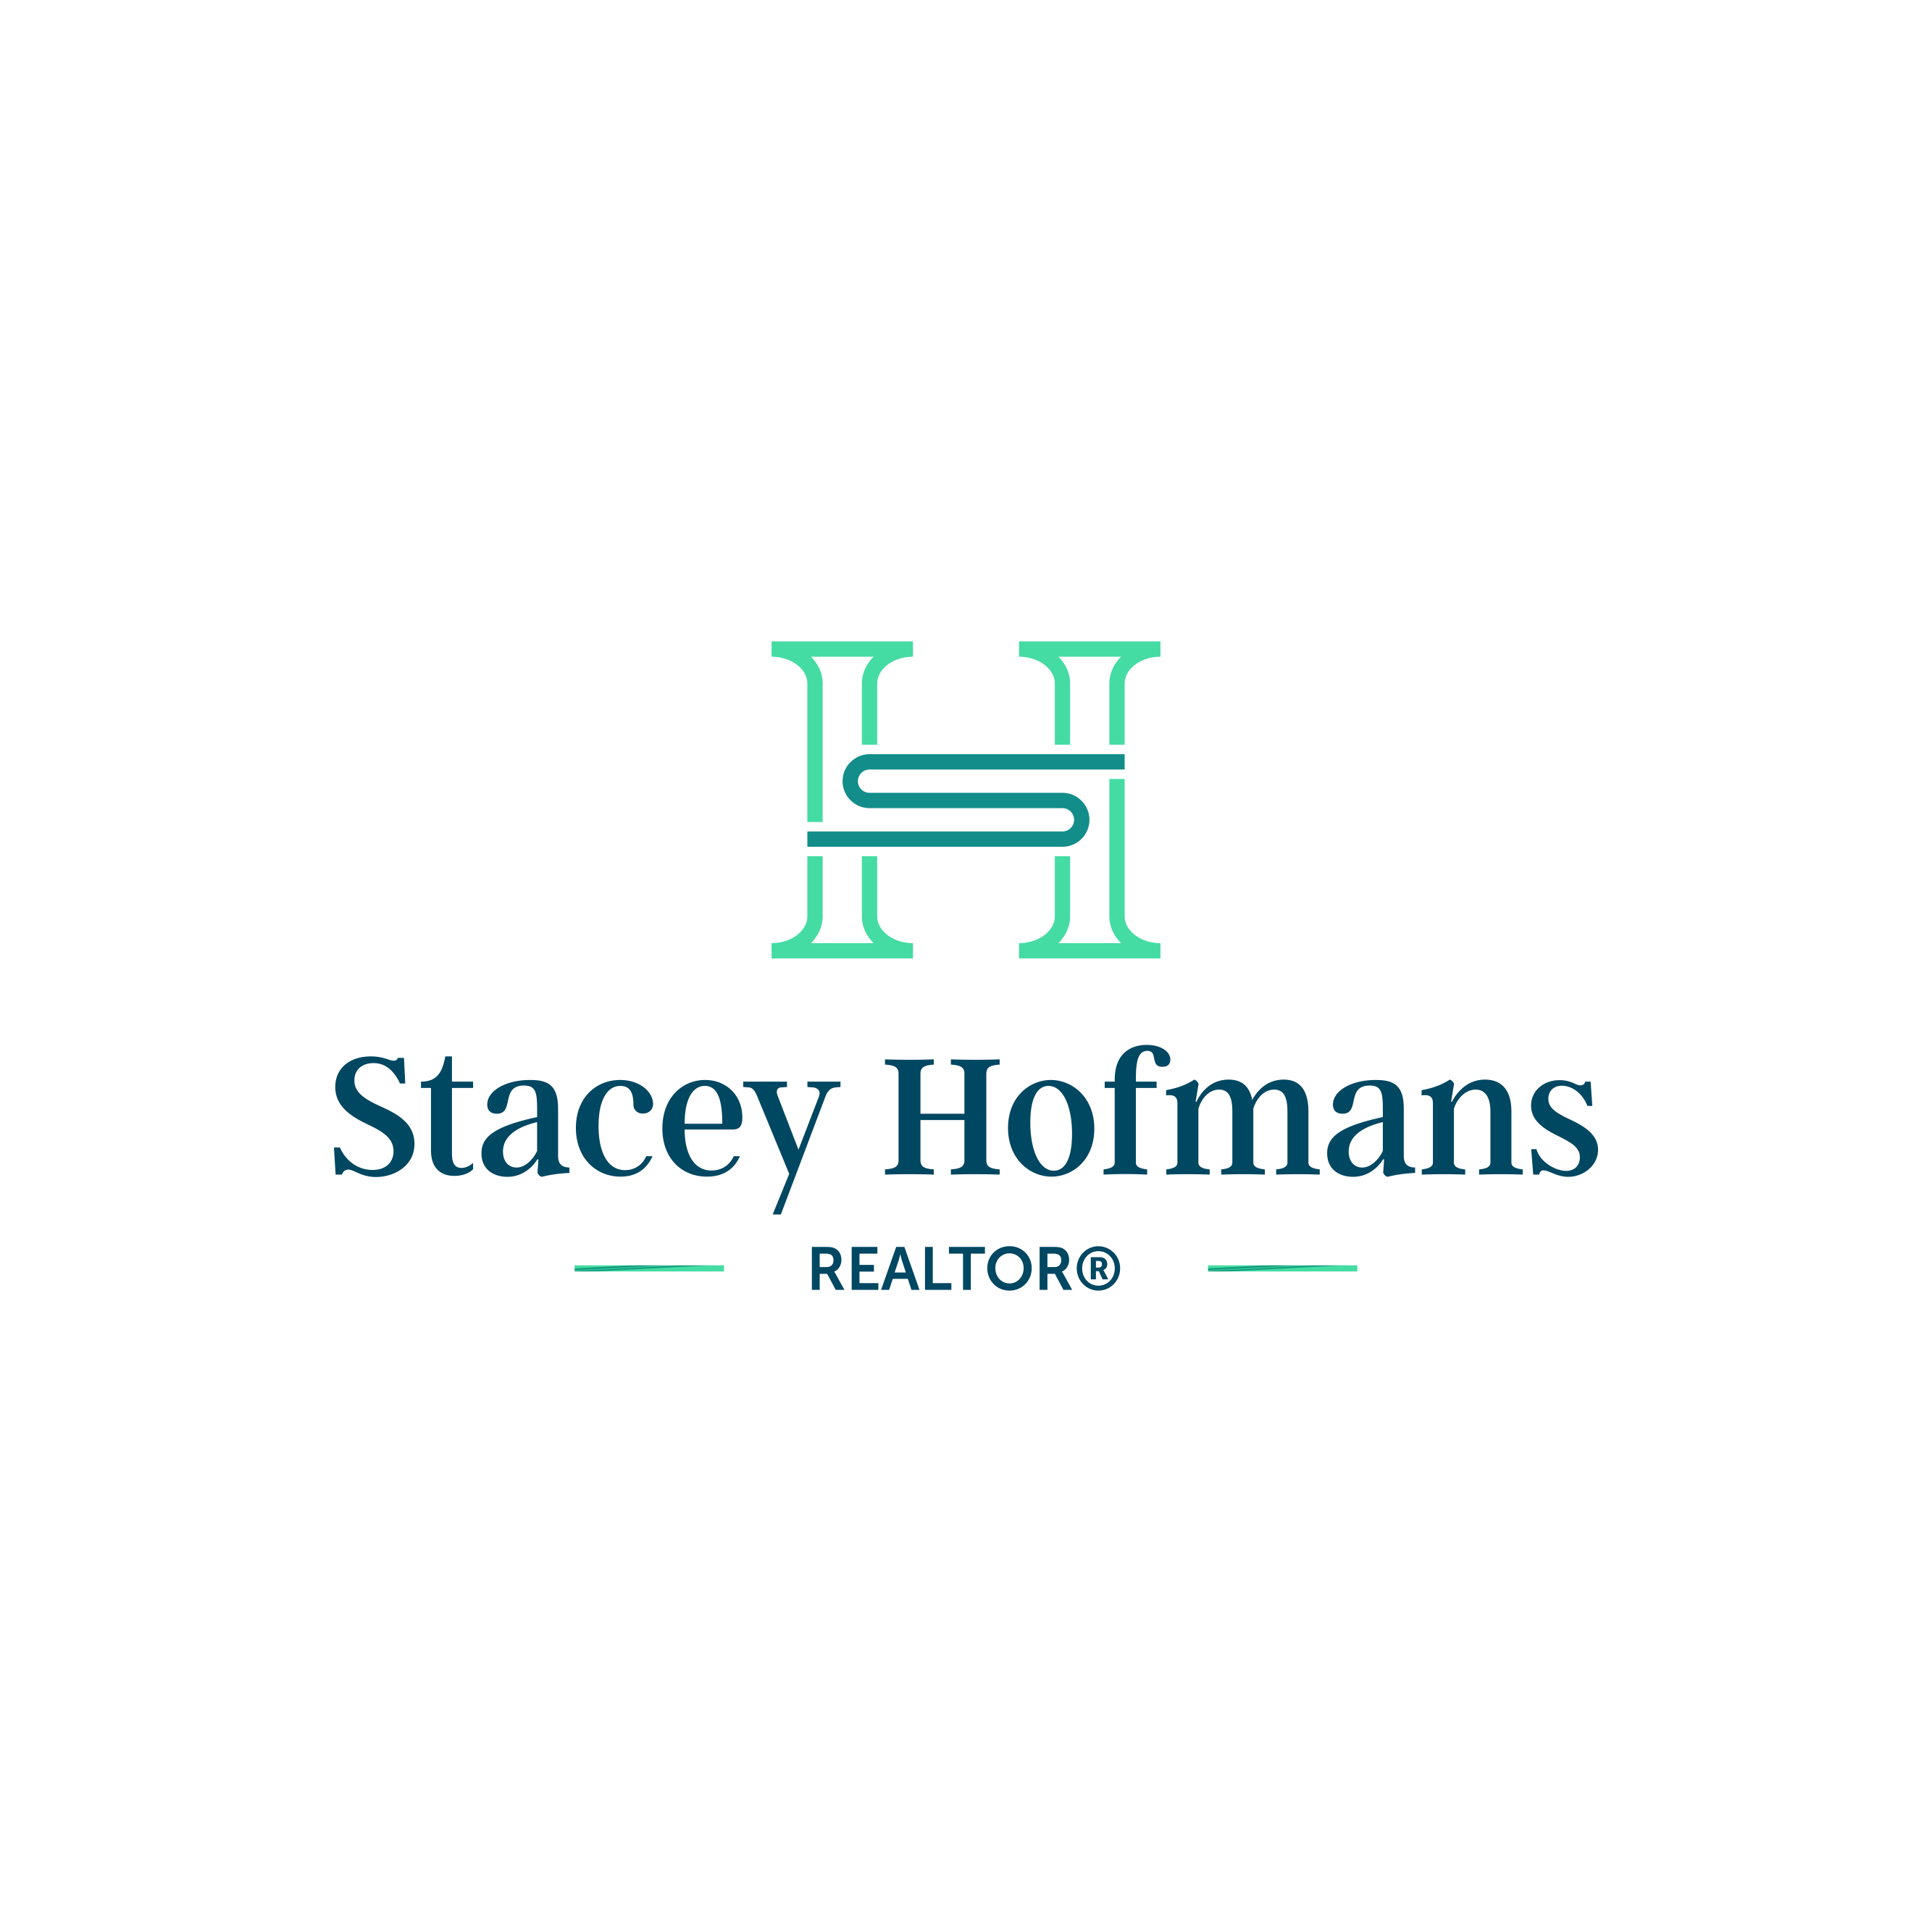 Stacey Hofmans - Home